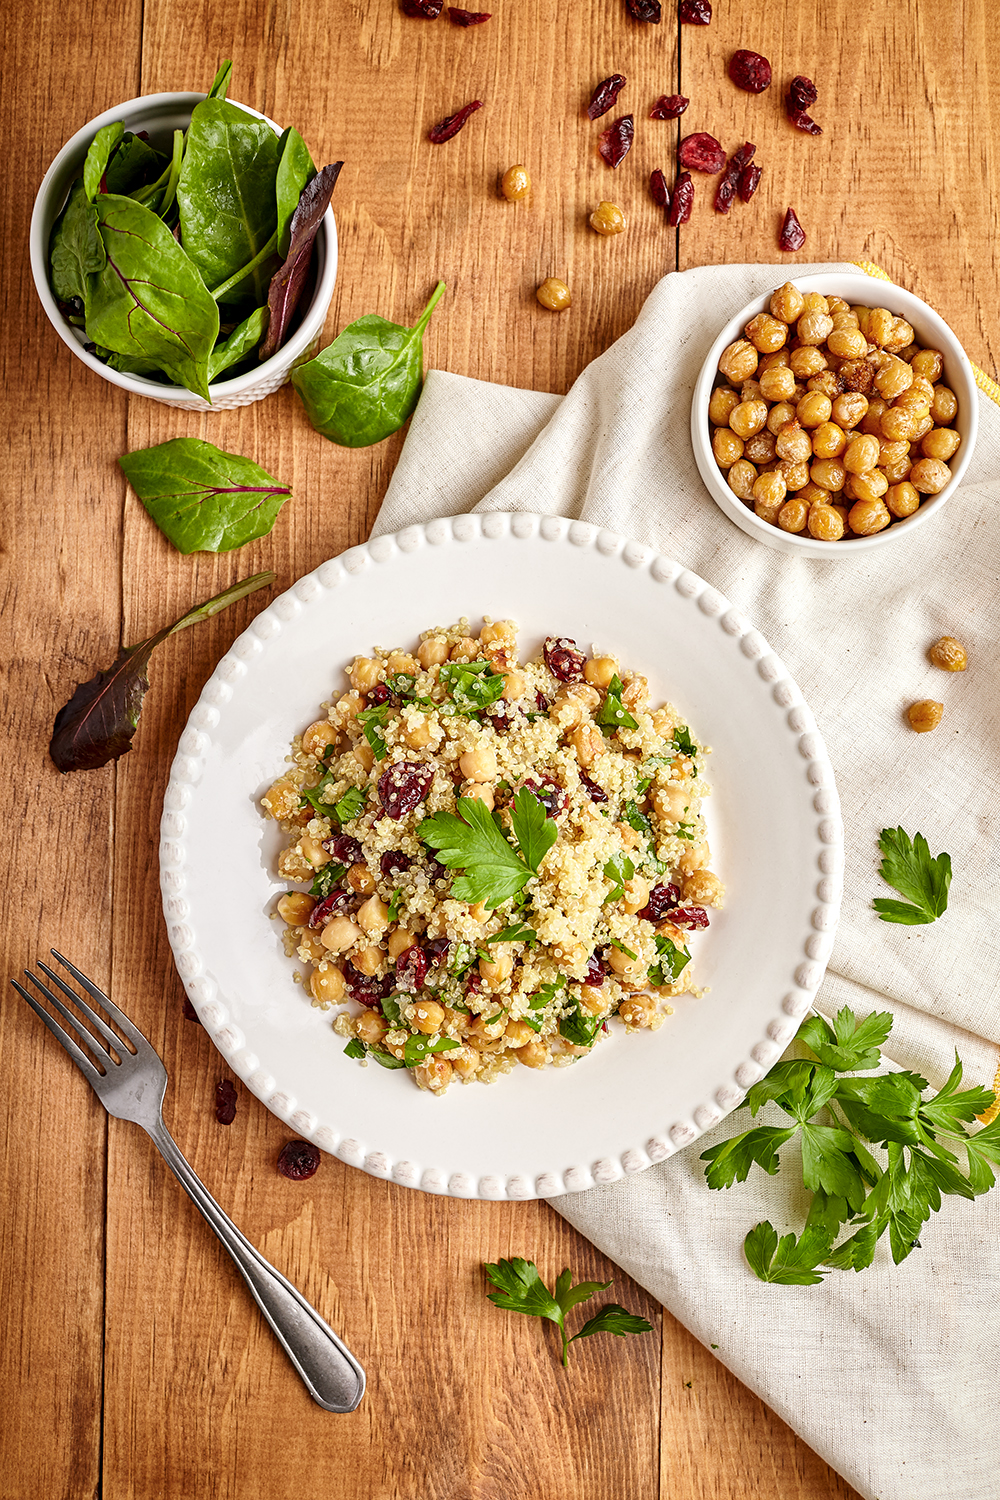 Warm quinoa salad with roasted chickpeas